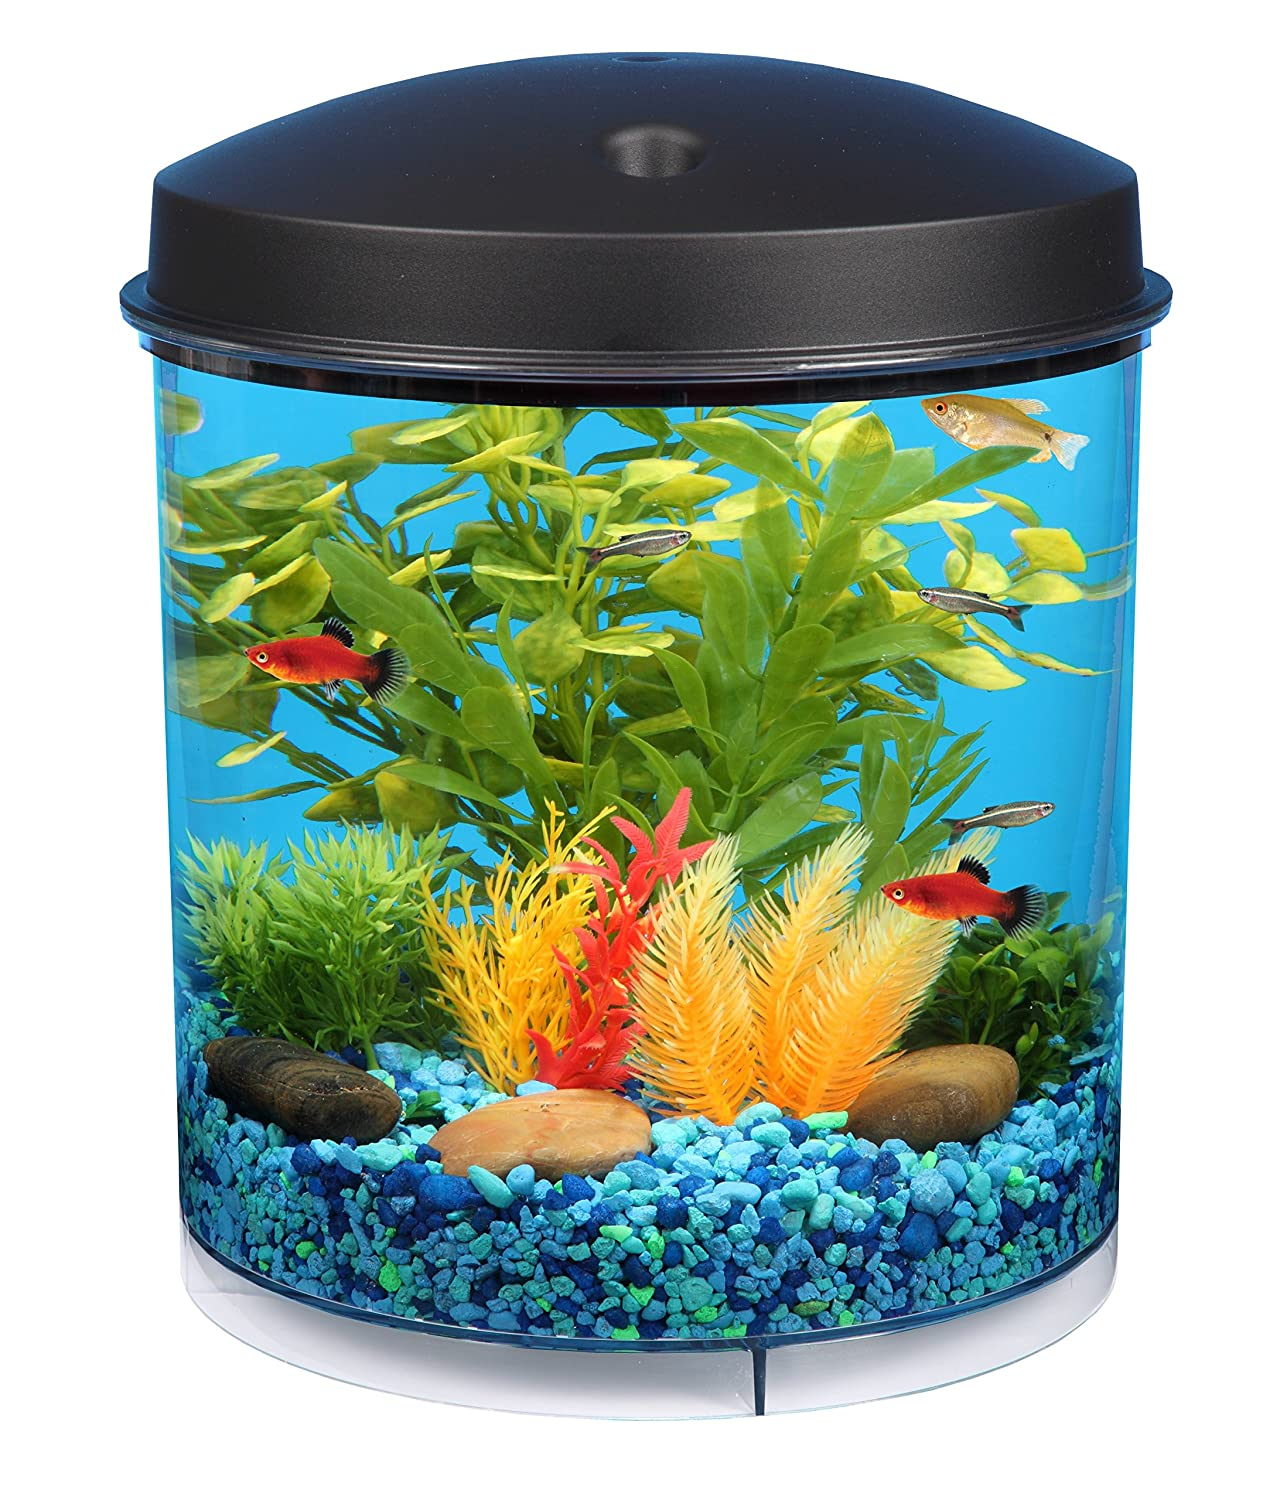 Fish in new aquarium - Api Aquaview 360 Aquarium Kit With Led Lighting And Internal